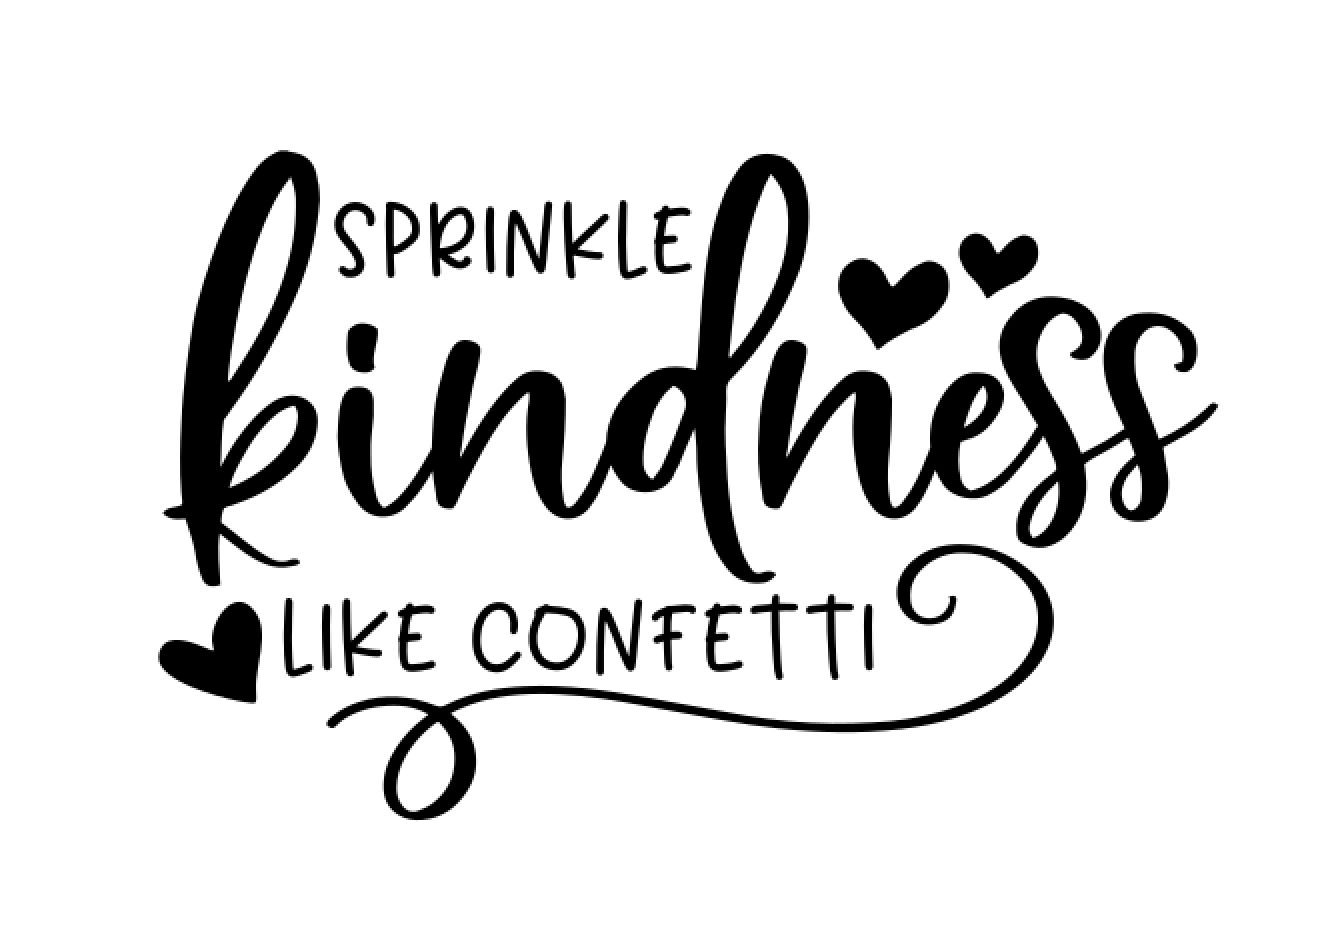 R2 Sprinkle kindness like